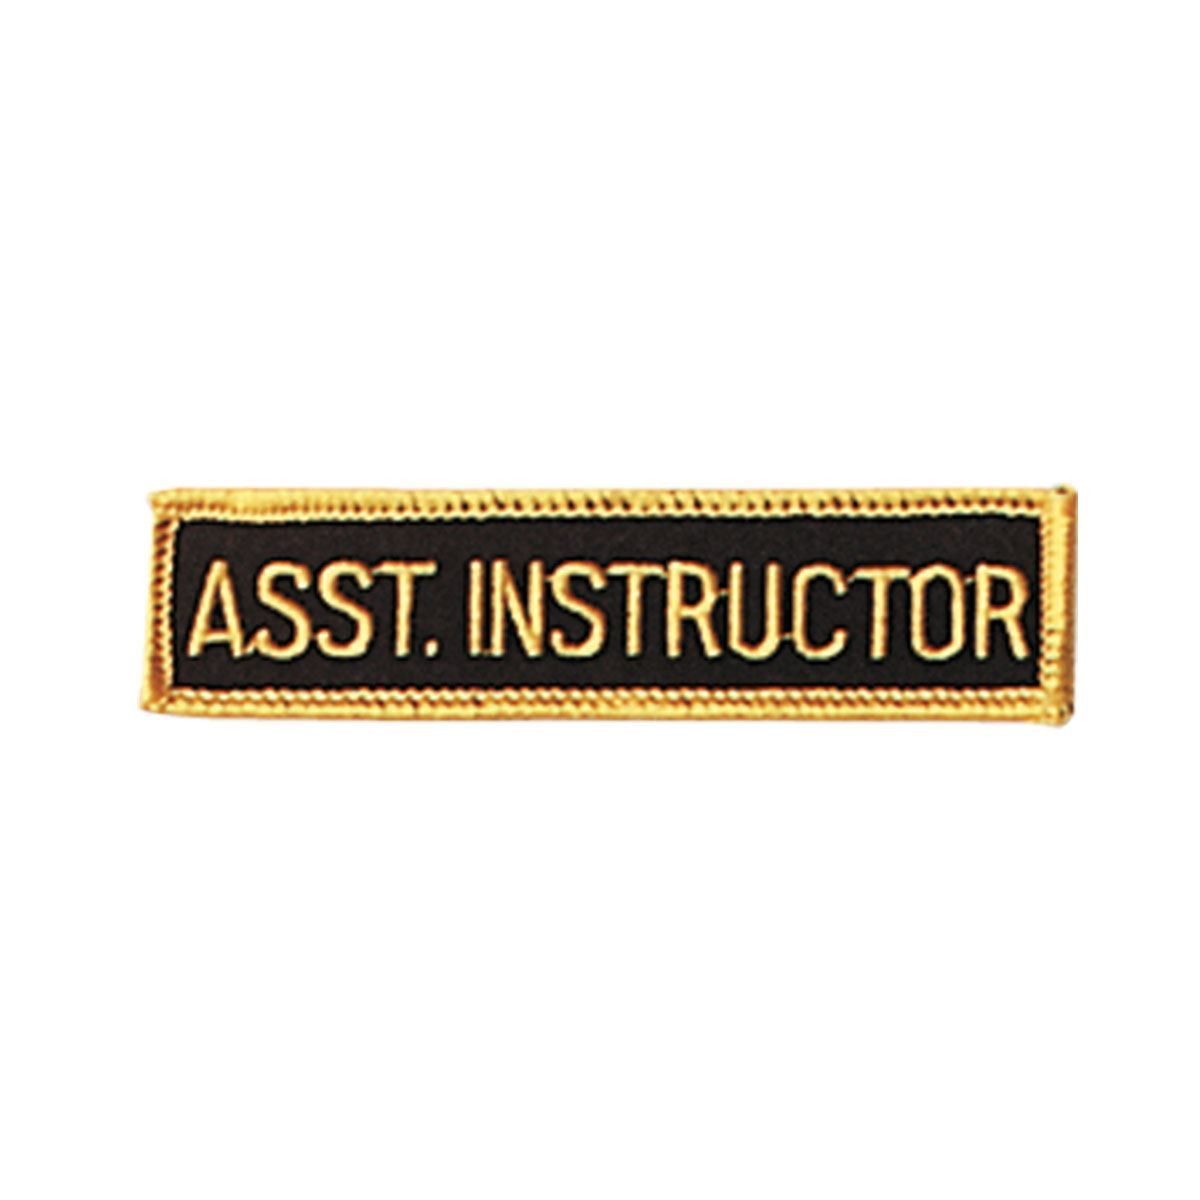 Assistant Instructor Patch c082-013-ain. Assistant Instructor Patch c082-013-ain Patch Assistant Instructor Patch.         Place on belt or uniform.         Each patch is 1 inch x 4 inches.         Heat seal backing